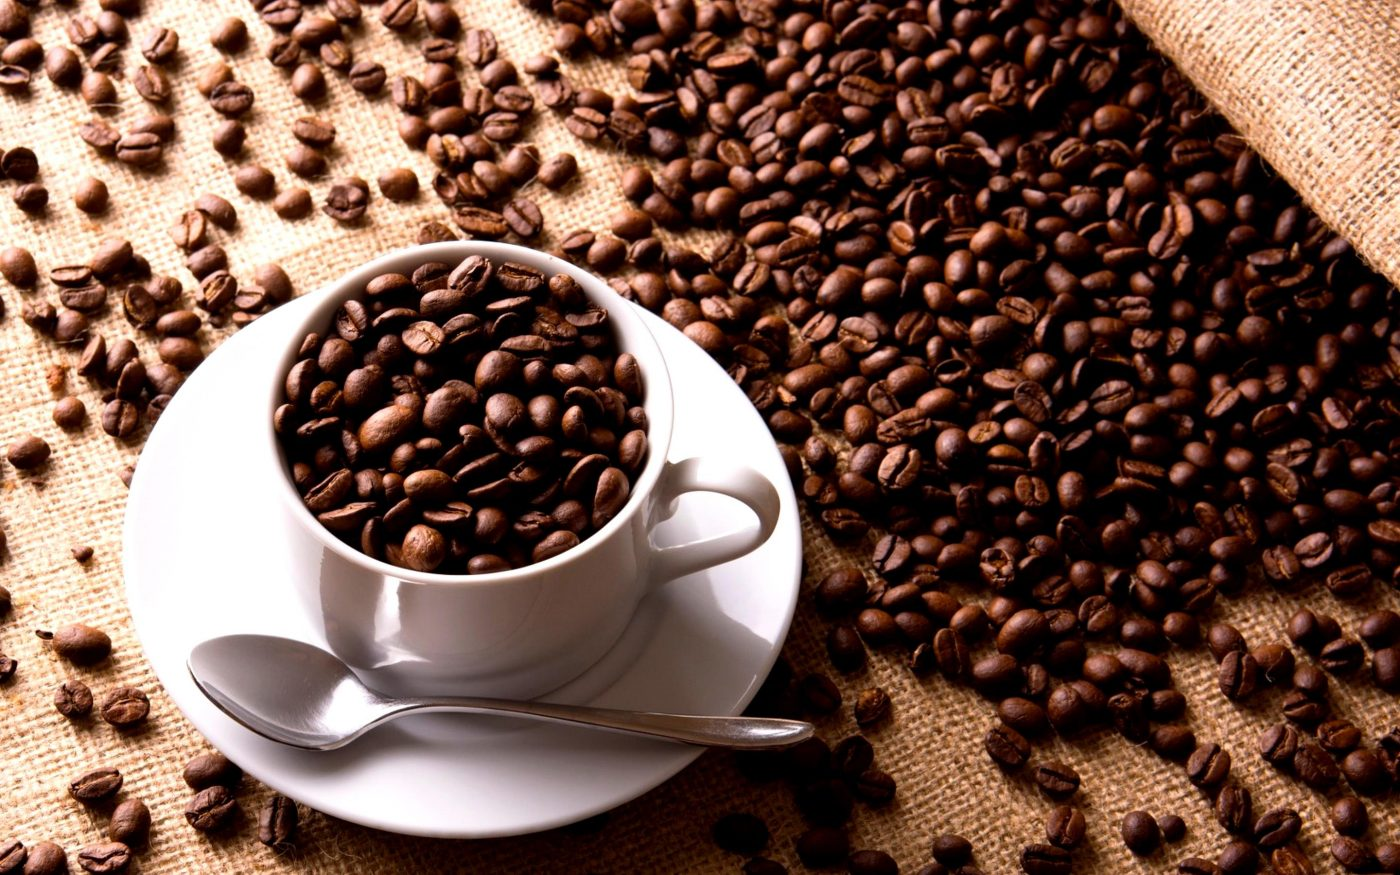 Coffee, Nicotine, and Anti-Inflammatory Drugs May Protect Against Parkinson's Disease